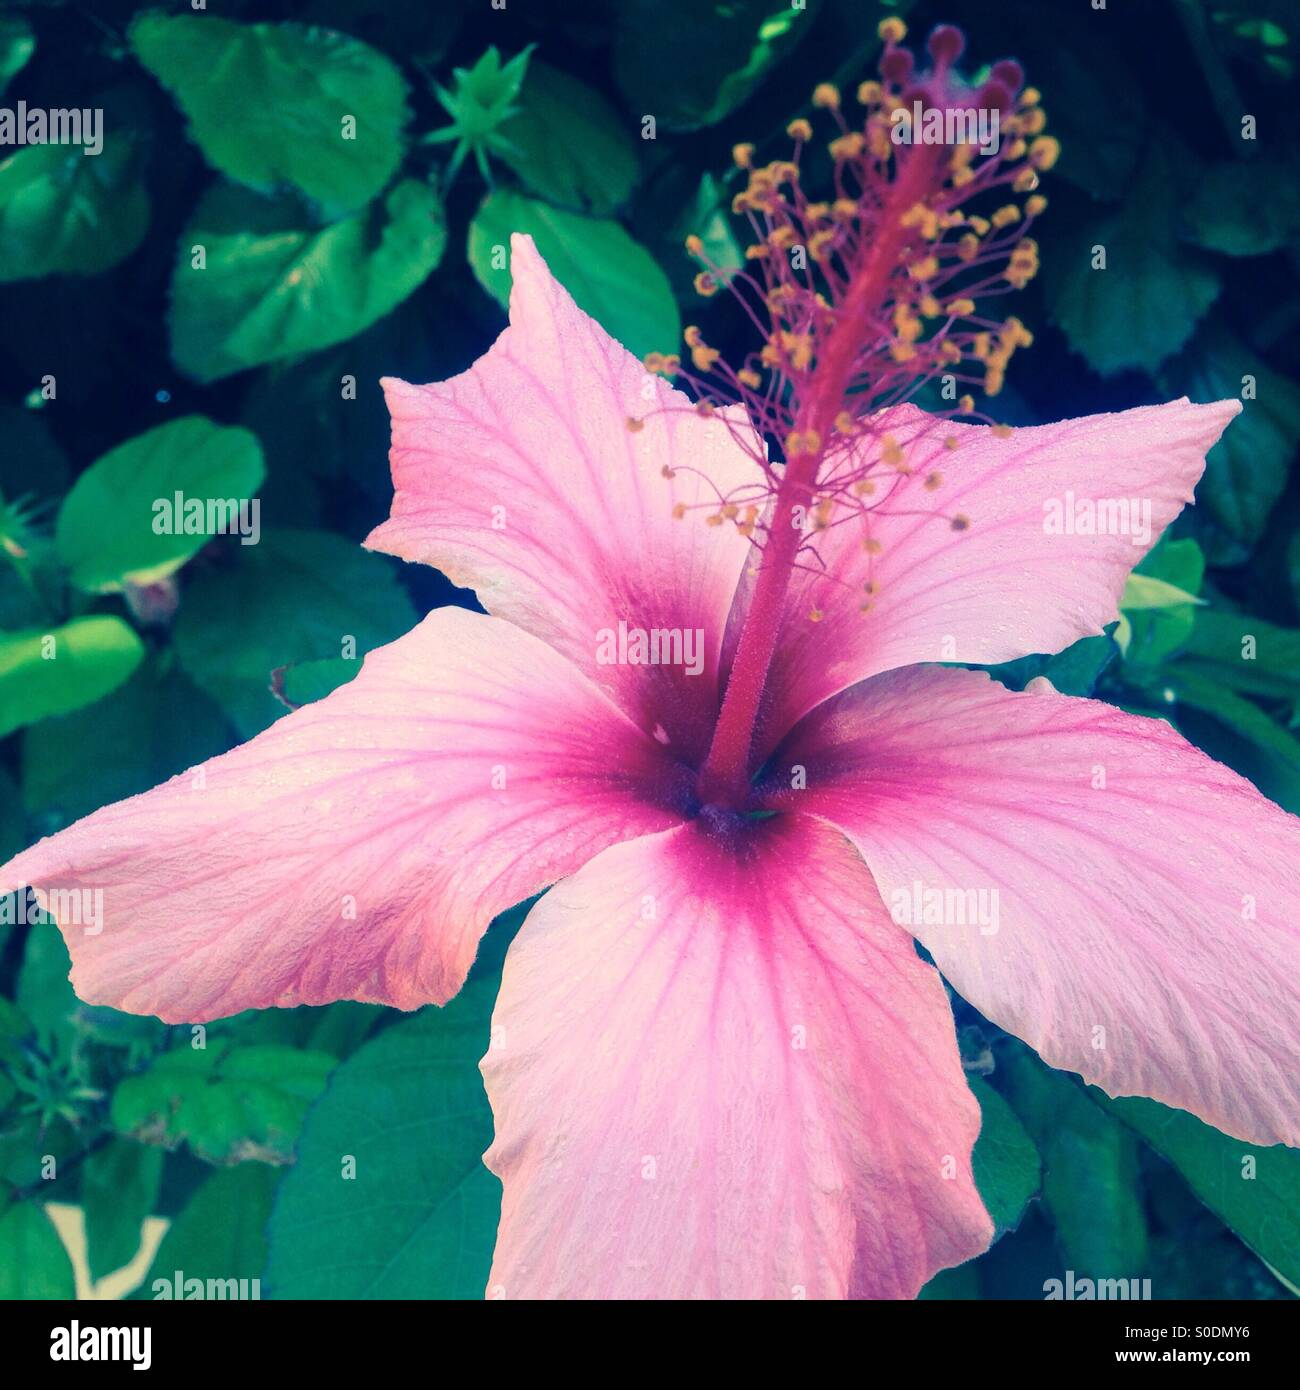 Pink Hibiscus Flower In Bloom Stock Photo 310088442 Alamy